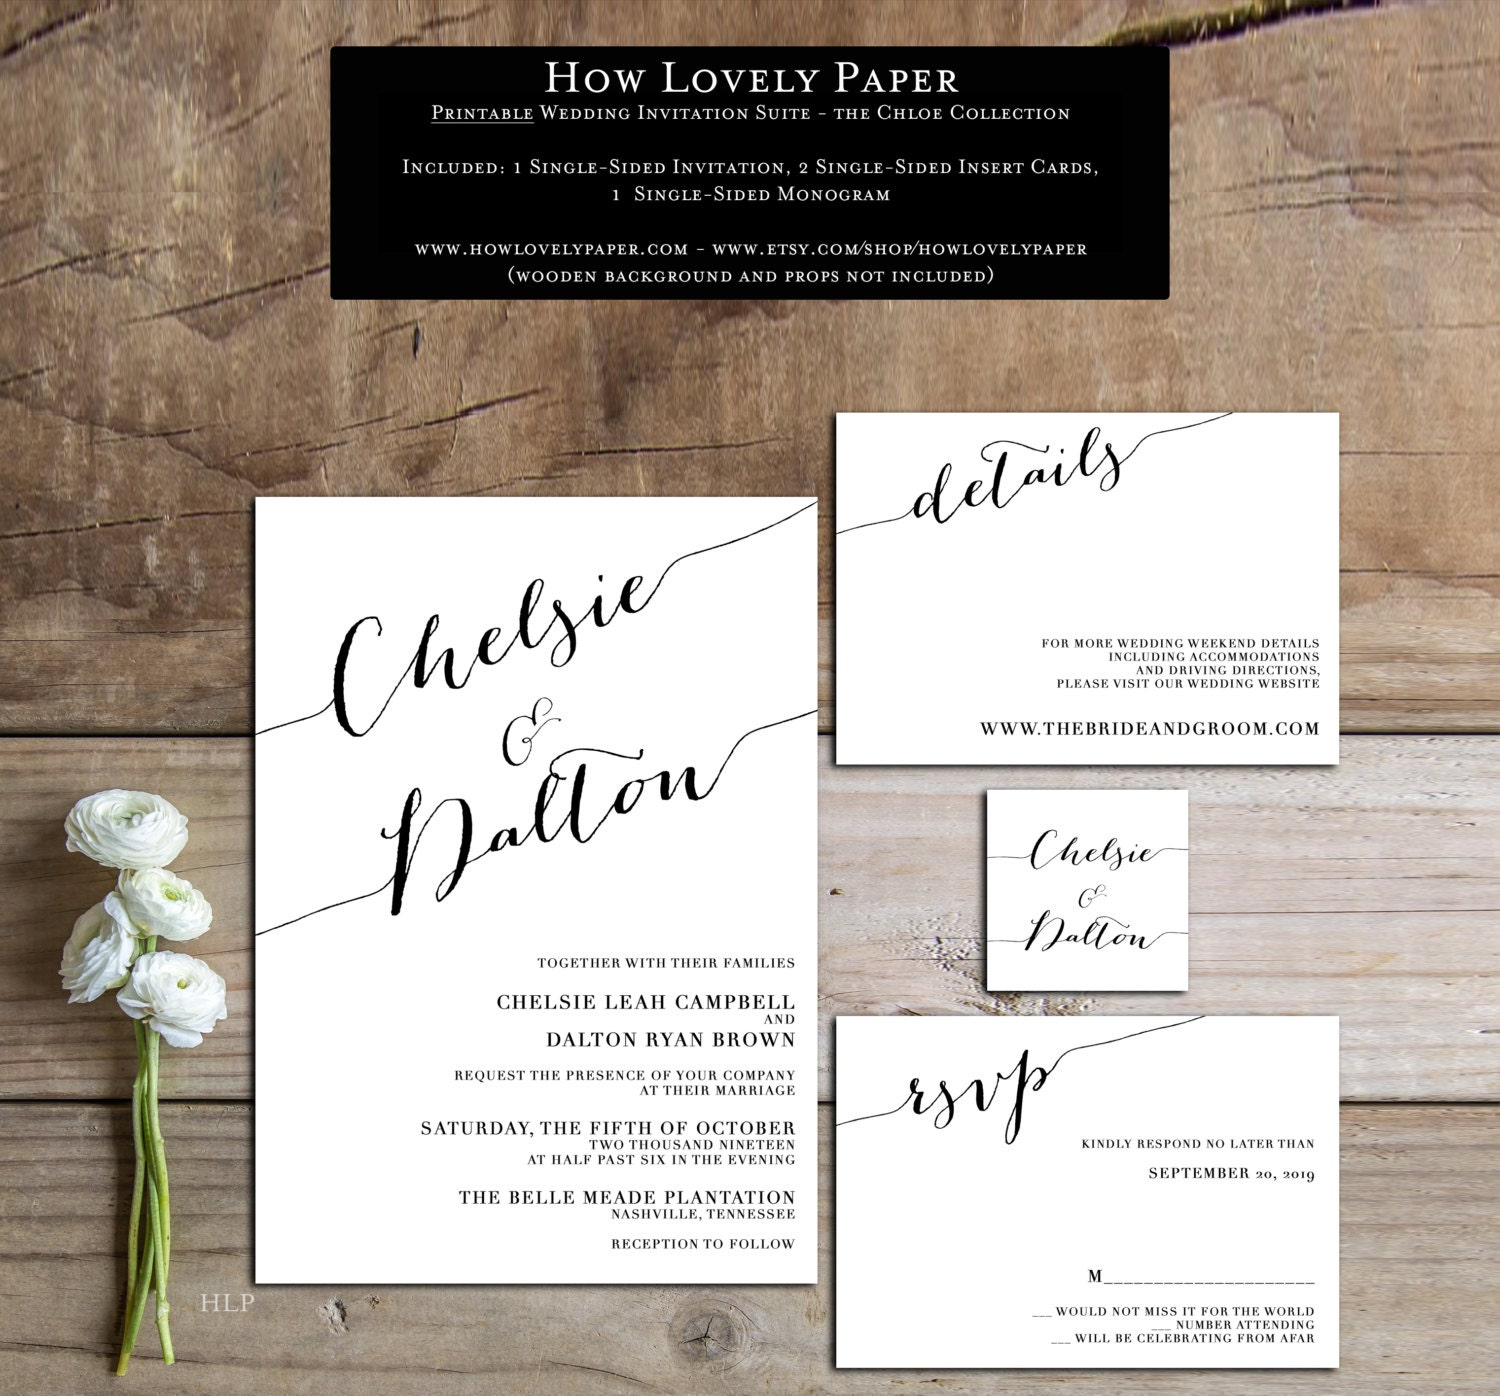 Wedding Invitation Suite: Printable Wedding Invitation Suite The Chloe Collection